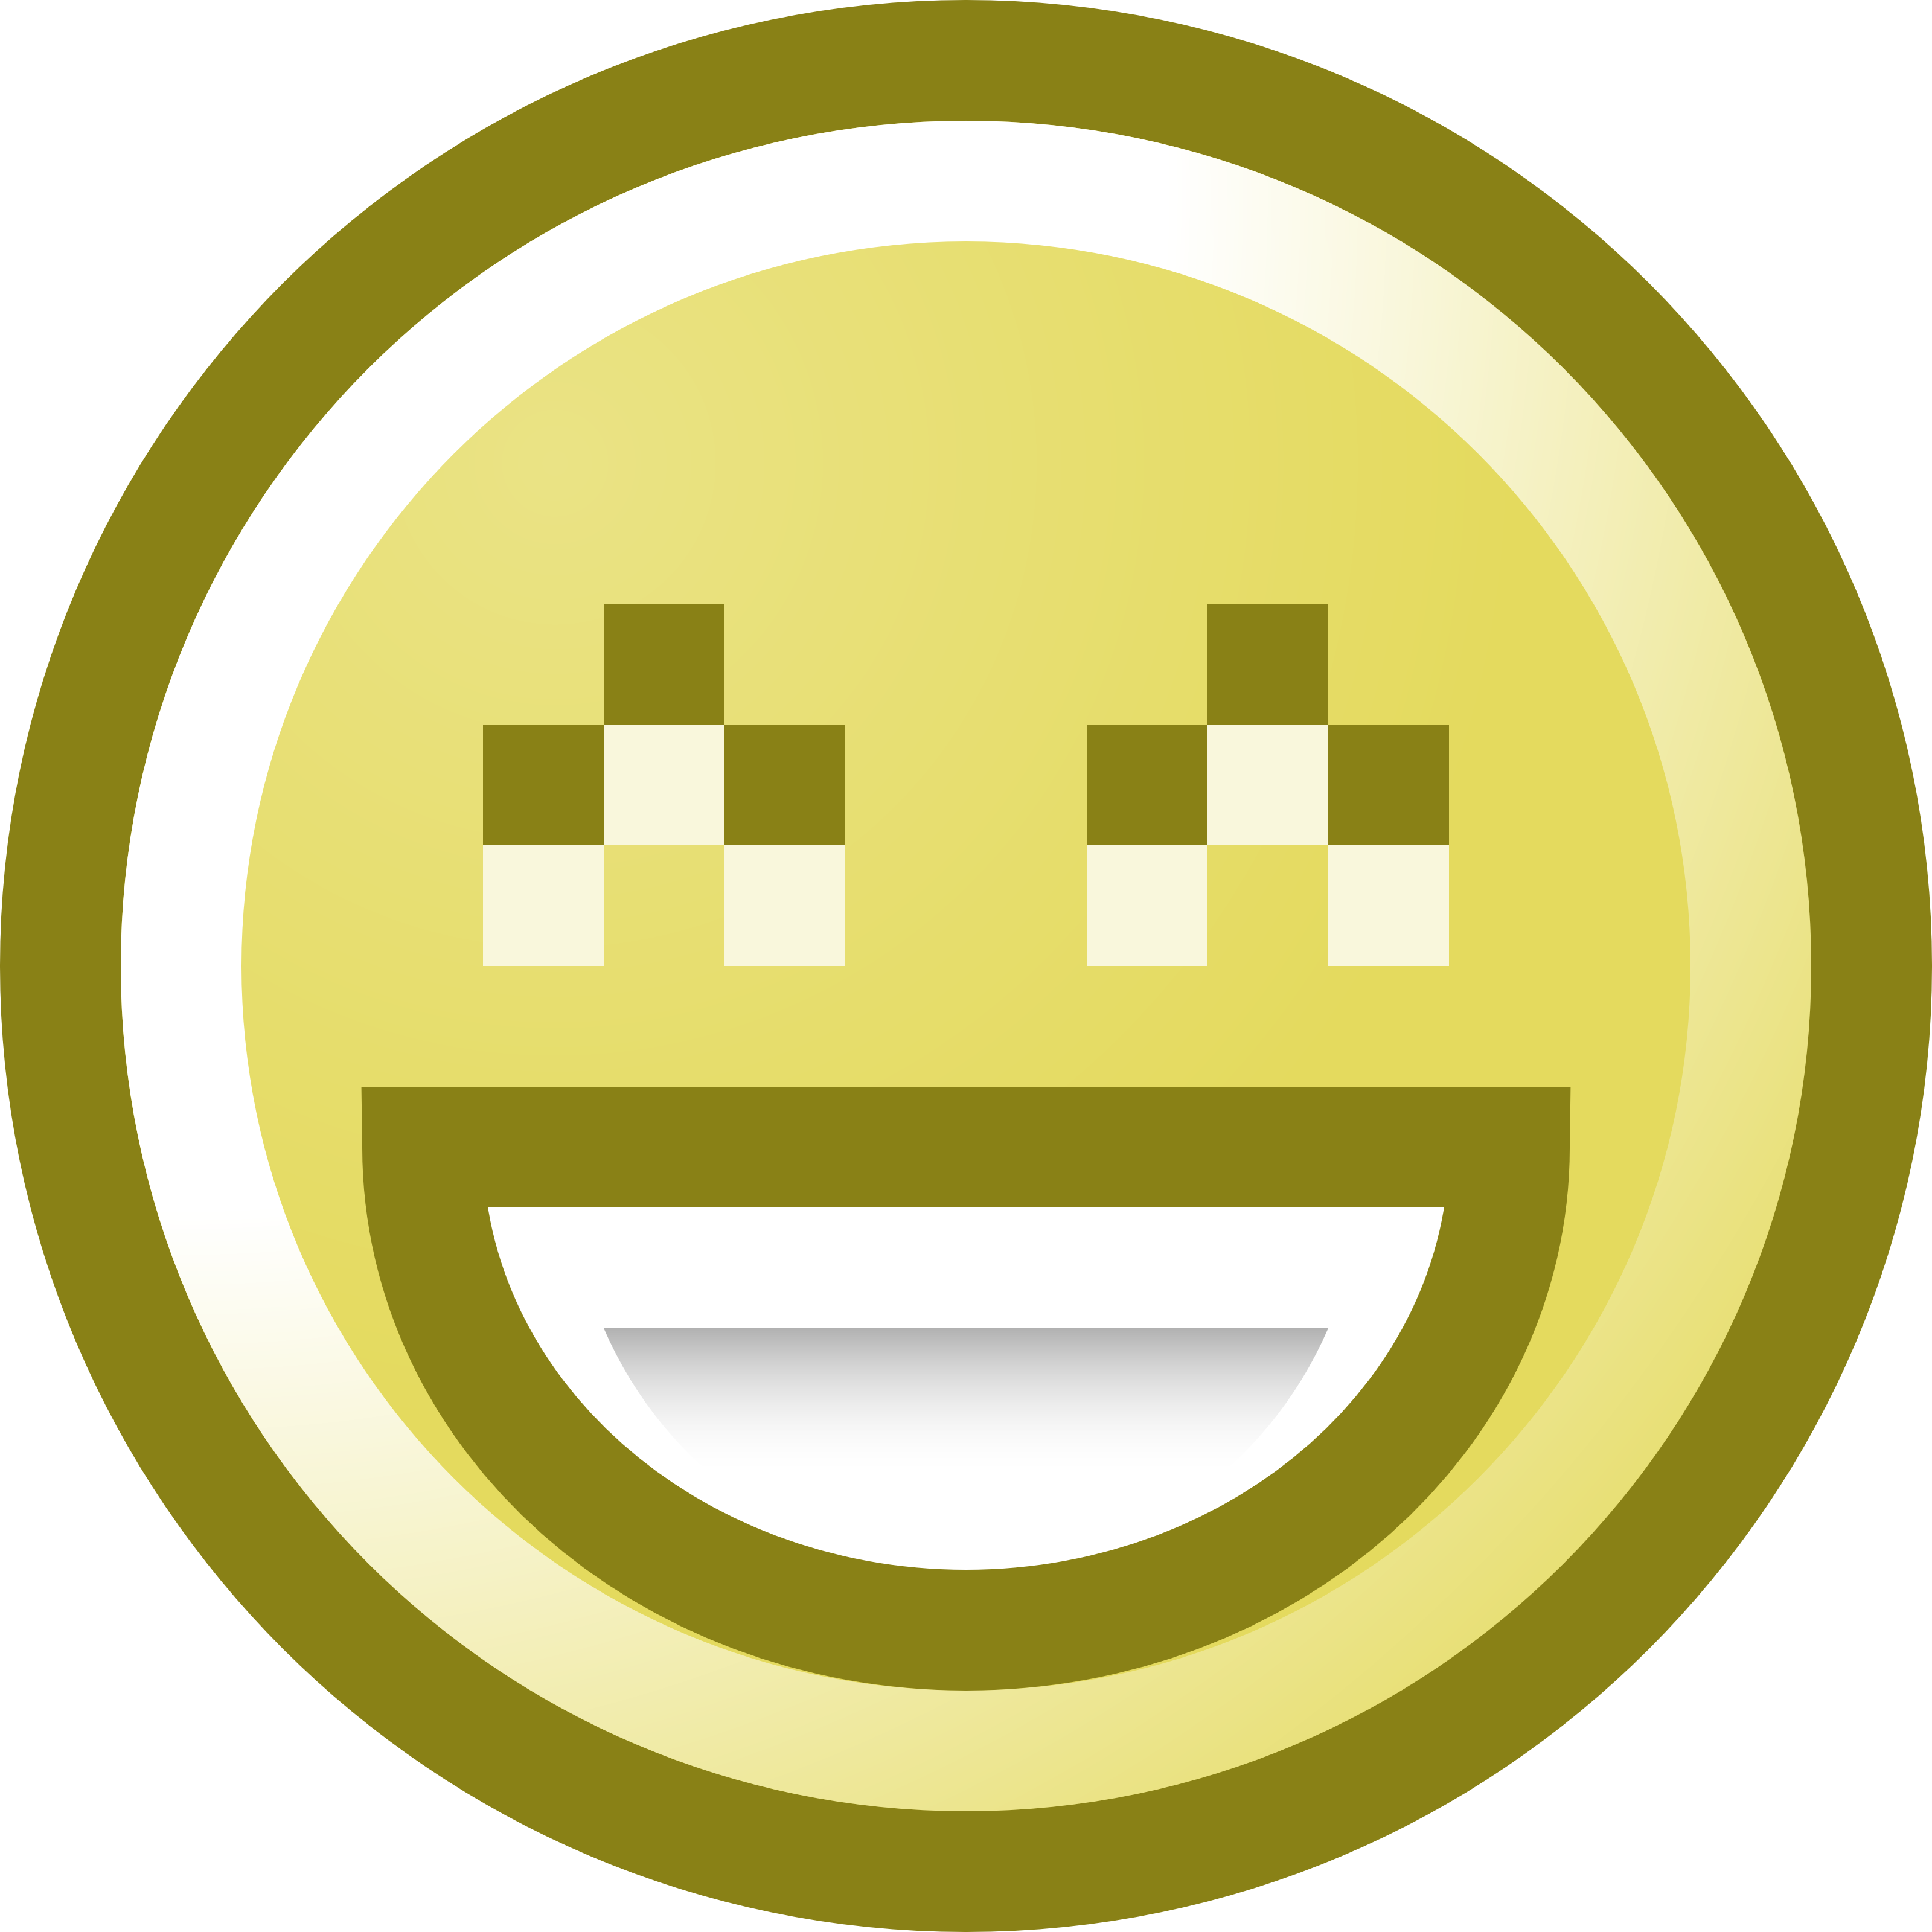 free smiley face clip art illustration rh free clipartof com free happy face pictures clip art Little Girl Smiley Faces